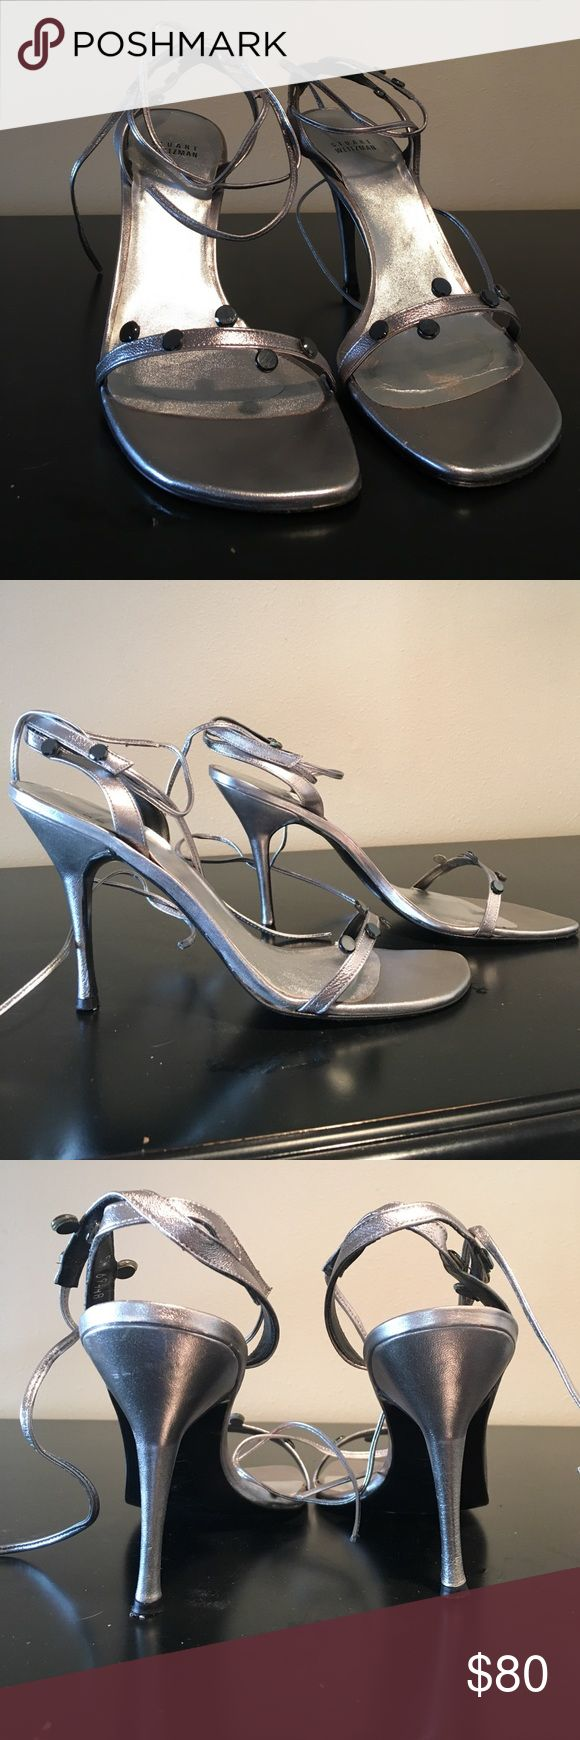 """Stuart Weitzman silver strappy sandals Stuart Weitzman sexy silver strappy sandals. Leather wrap ties at ankles. 4"""" heel. Normal wear on bottom. Upper in mint condition. Size 10 1/2. Stuart Weitzman Shoes"""